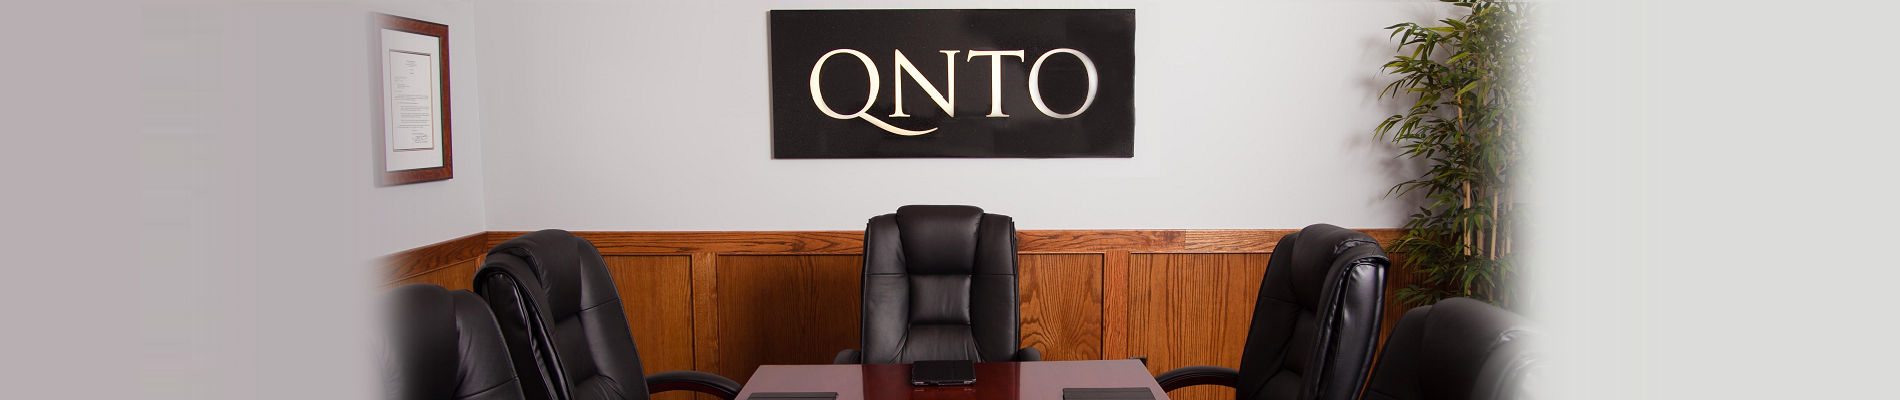 Image of Quaint Oak Bancorp Boardroom